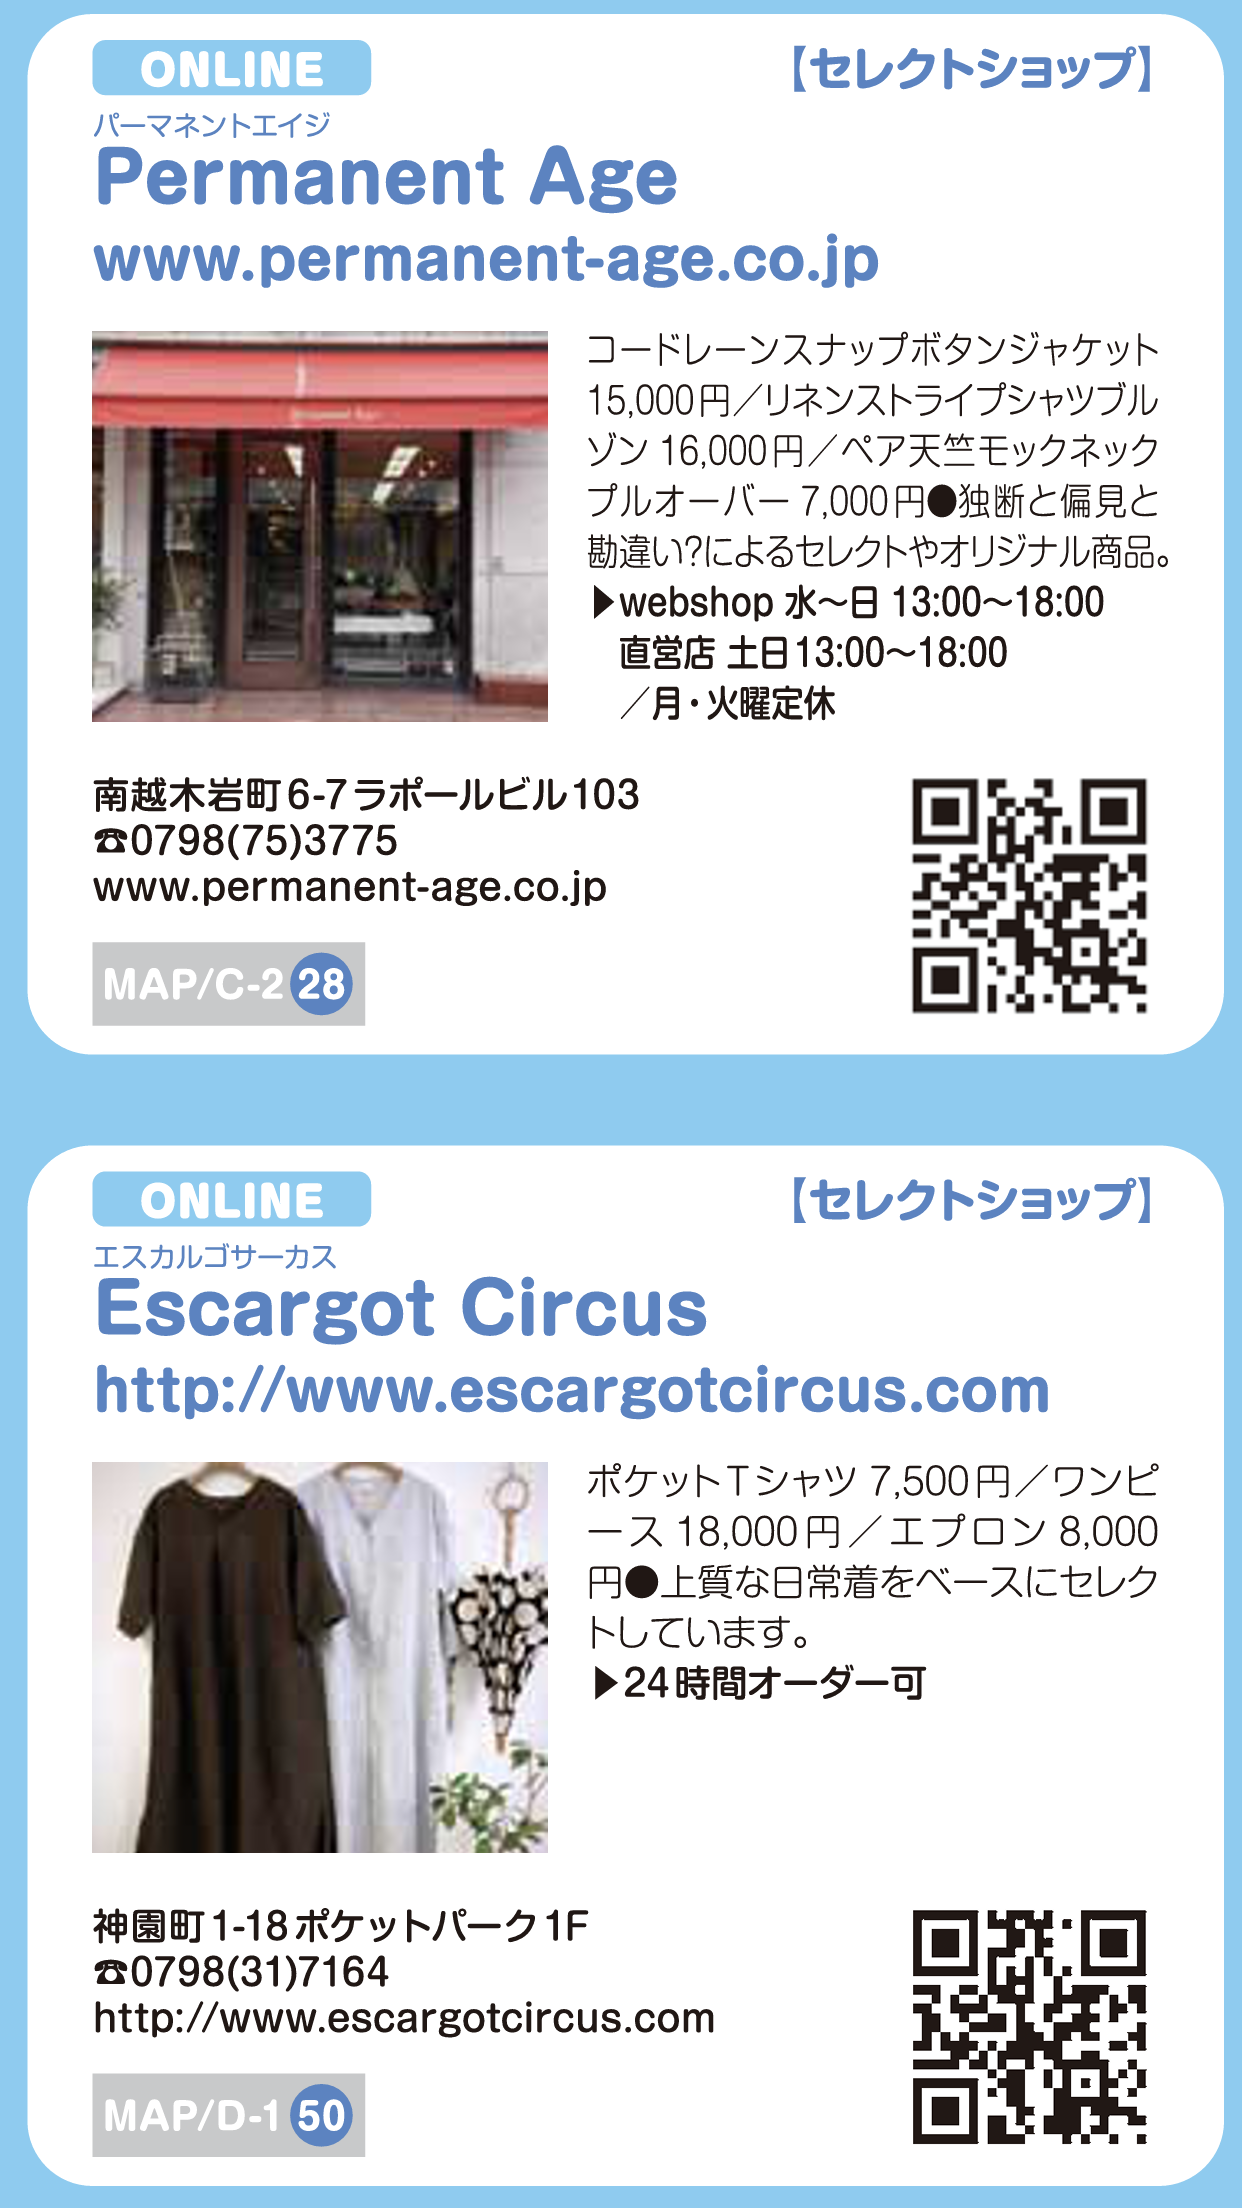 【オンラインストア】Permanent Age、Escargot Circus